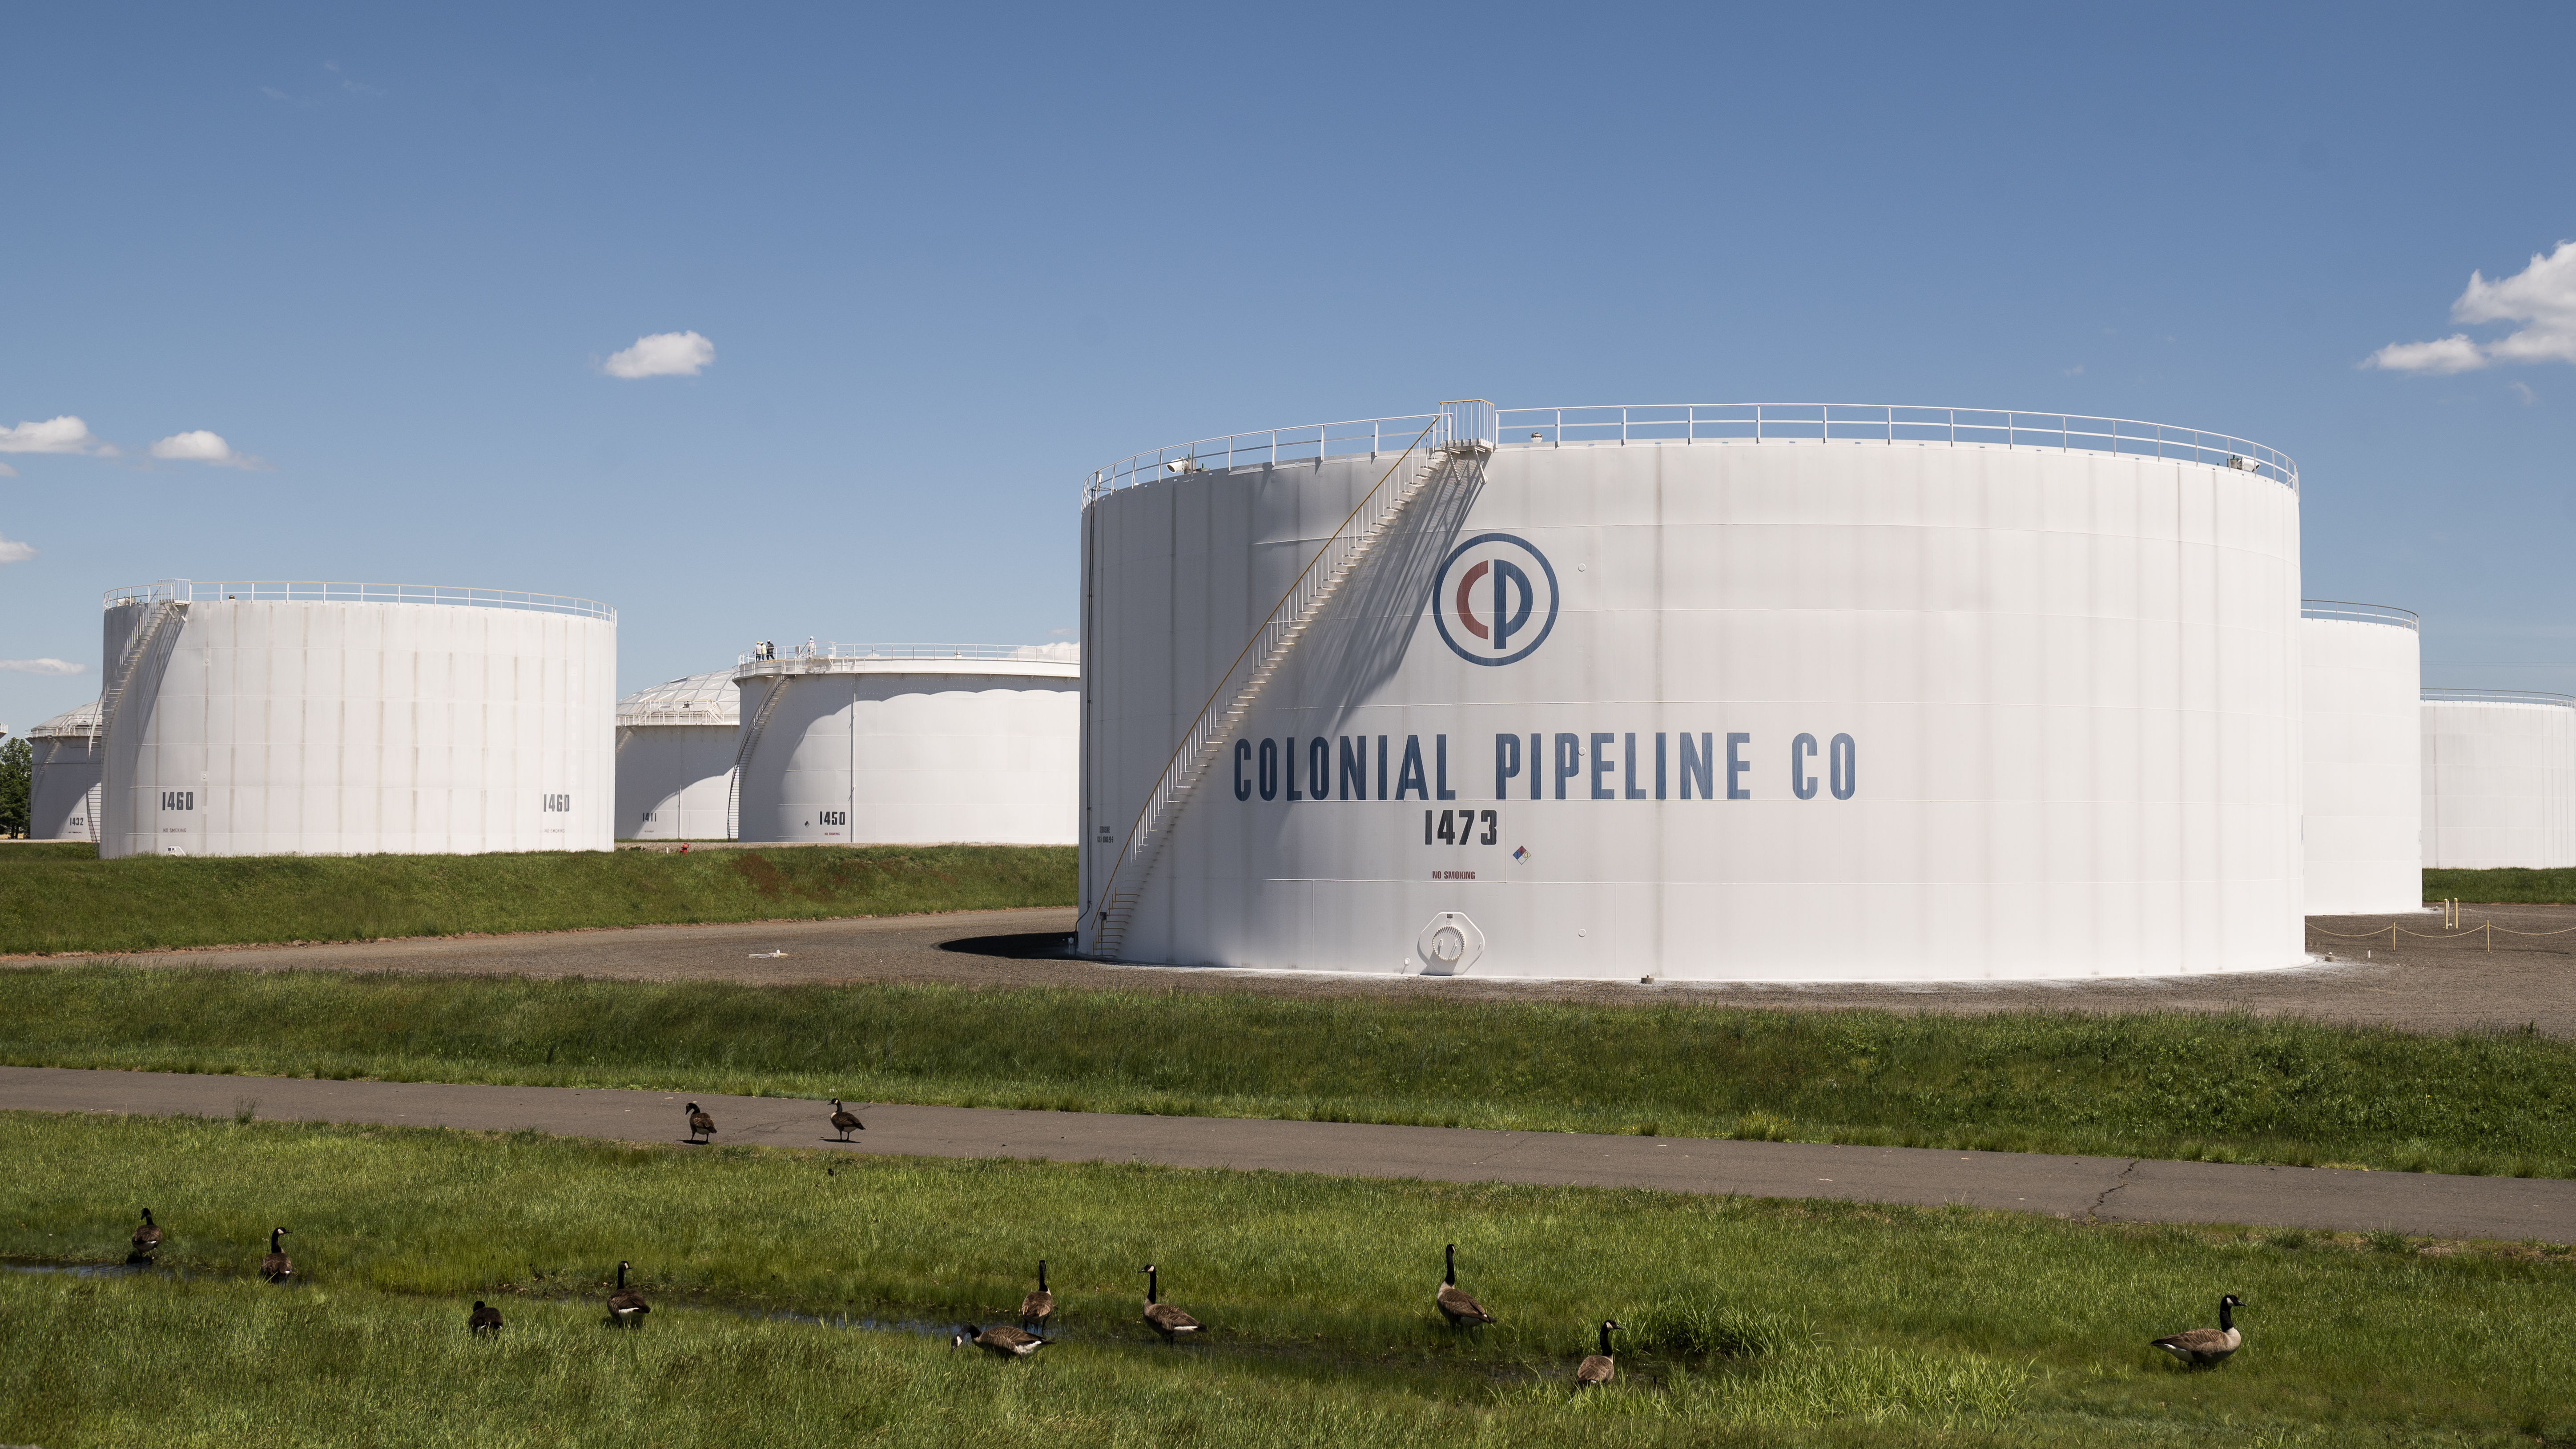 President Biden alluded to the Colonial Pipeline cyberattack in his new executive order. Here, storage tanks at a Colonial Pipeline facility are seen Wednesday in Avenel, N.J.